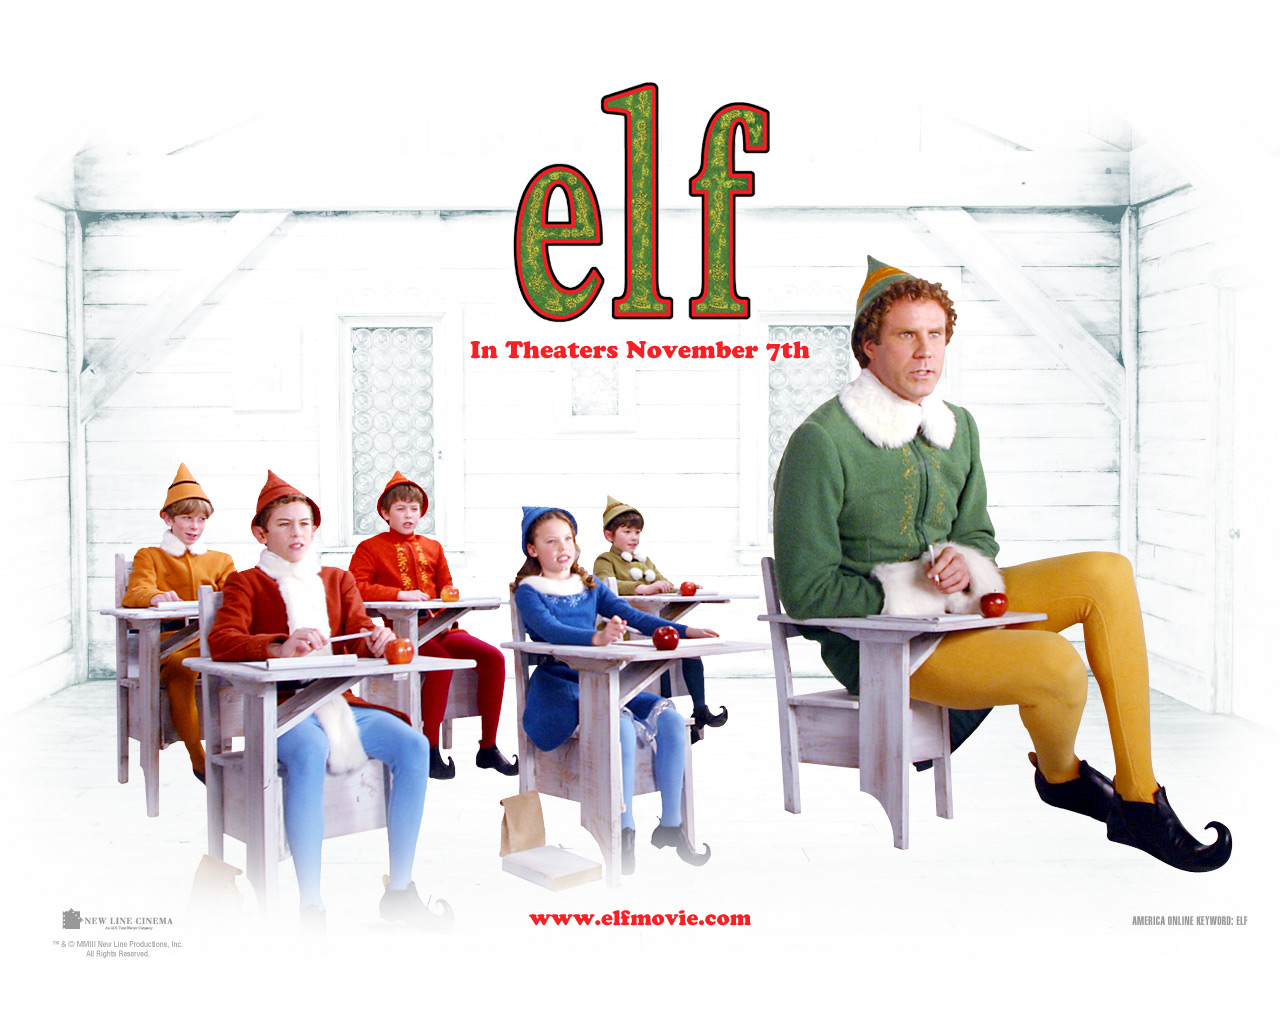 The Elf on the Shelf: A Christmas Tradition is a children's picture book, written by Carol Aebersold and her daughter Chanda Bell, and illustrated by Coë Steinwart.